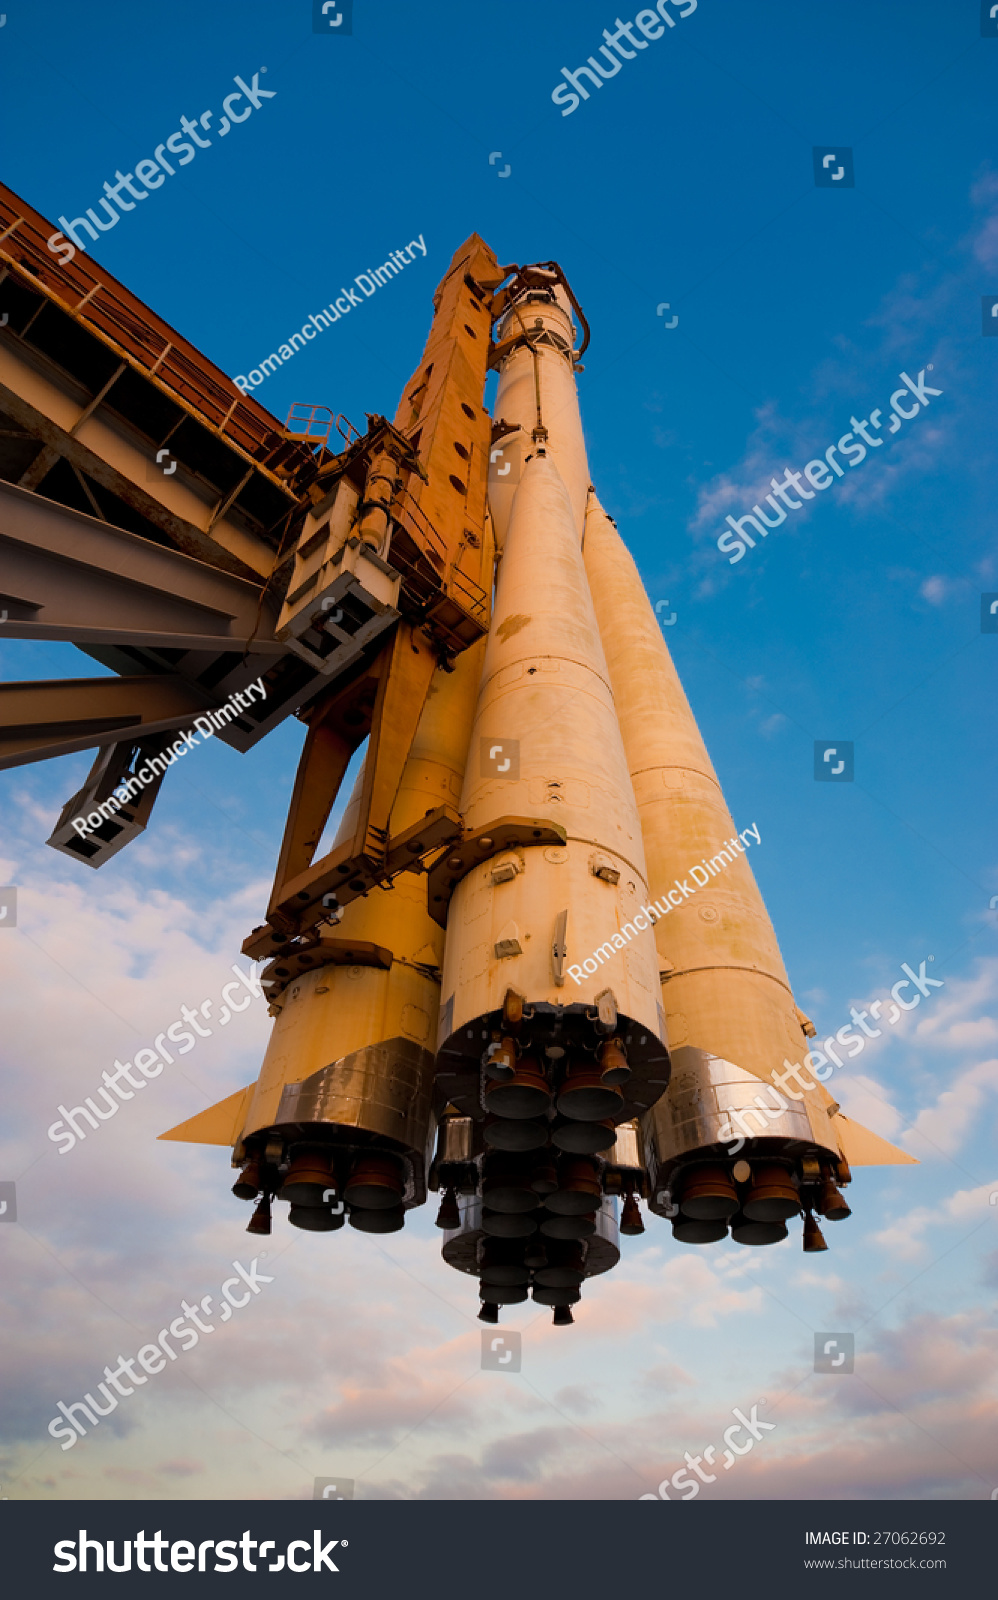 Russian Spaceship Vostok On Launchpad Stock Photo (Edit Now